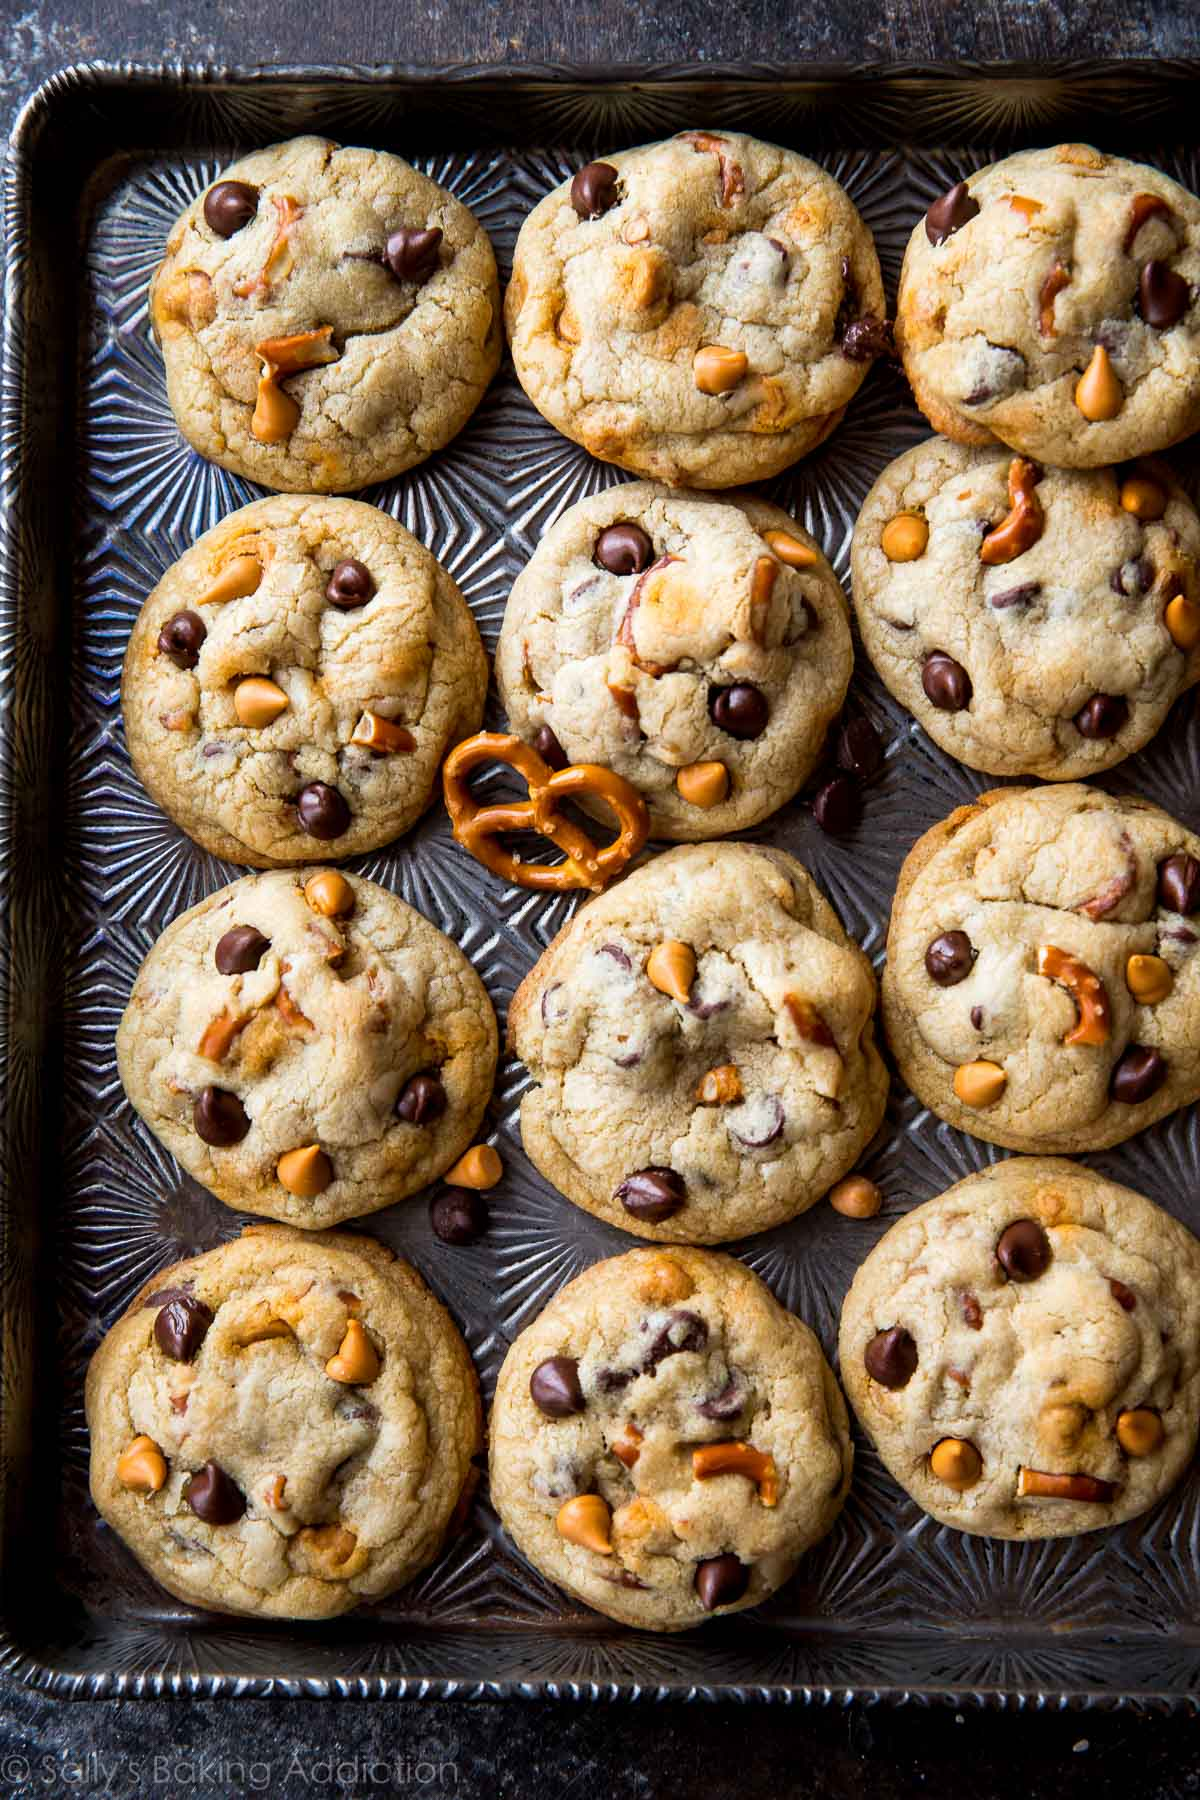 Sweet, salt, soft, and crispy these butterscotch pretzel chocolate chip cookies are irresistible! Quick and easy recipe on sallysbakingaddiction.com